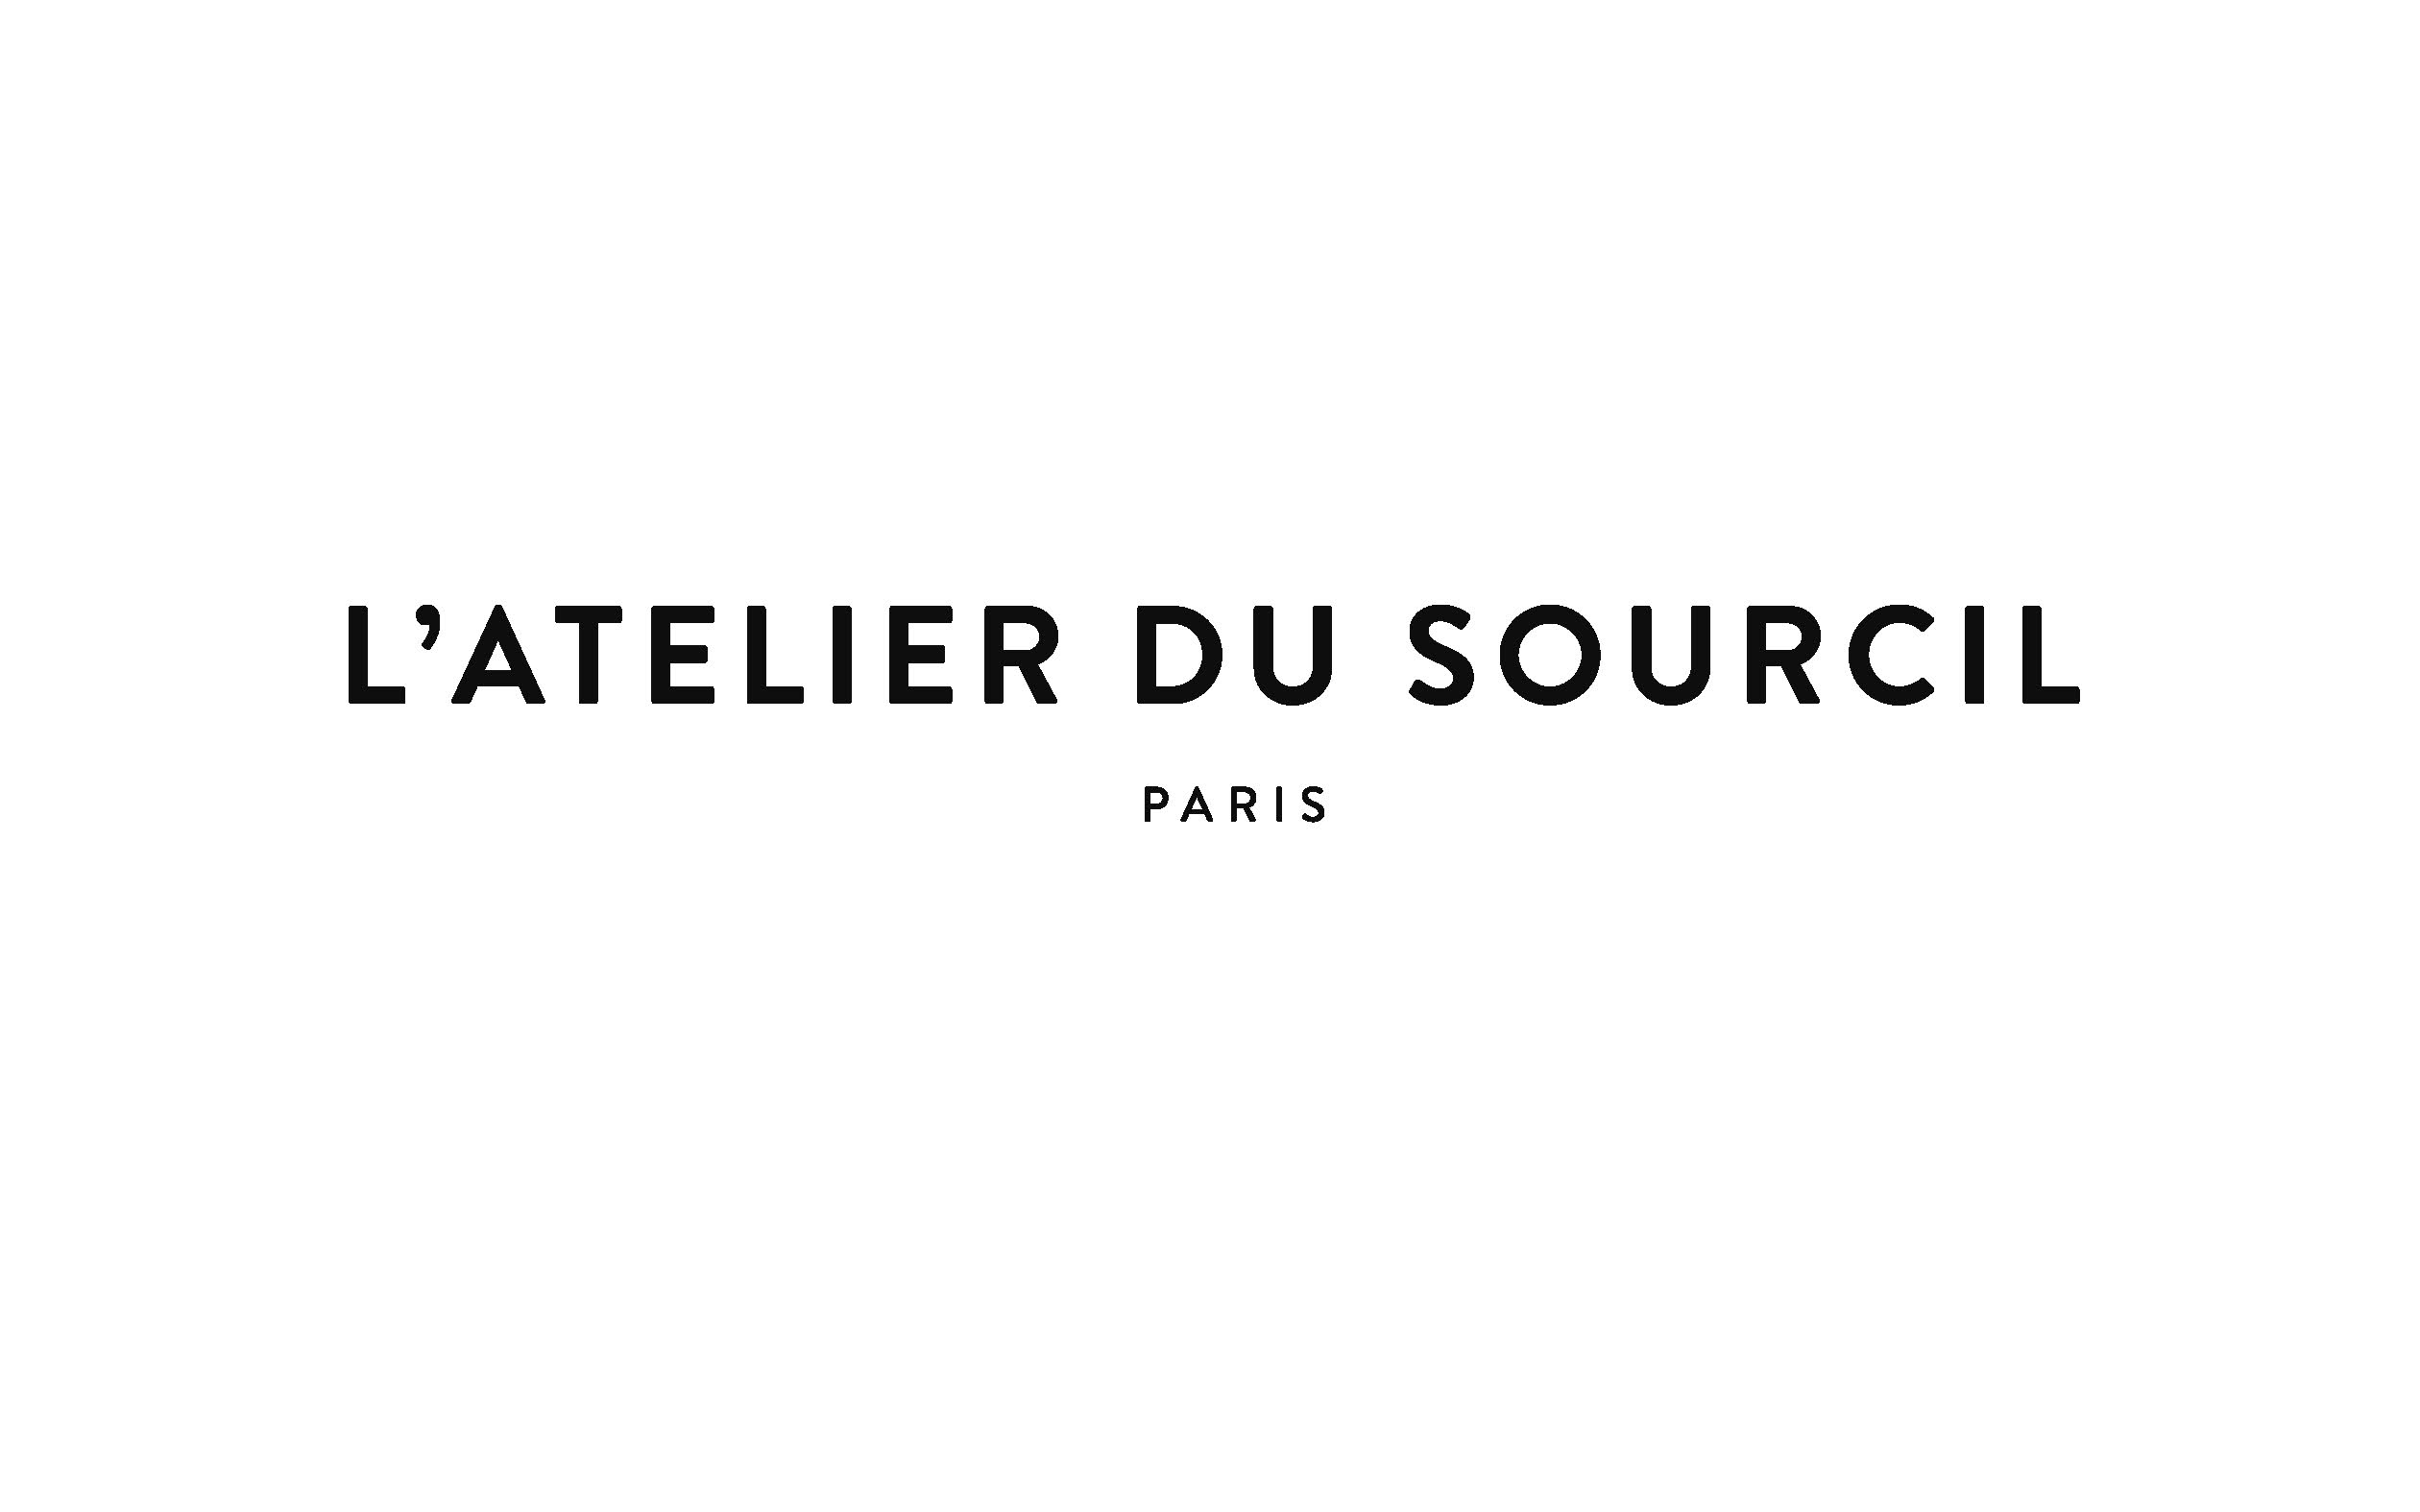 L'Atelier du Sourcil - Paris 16